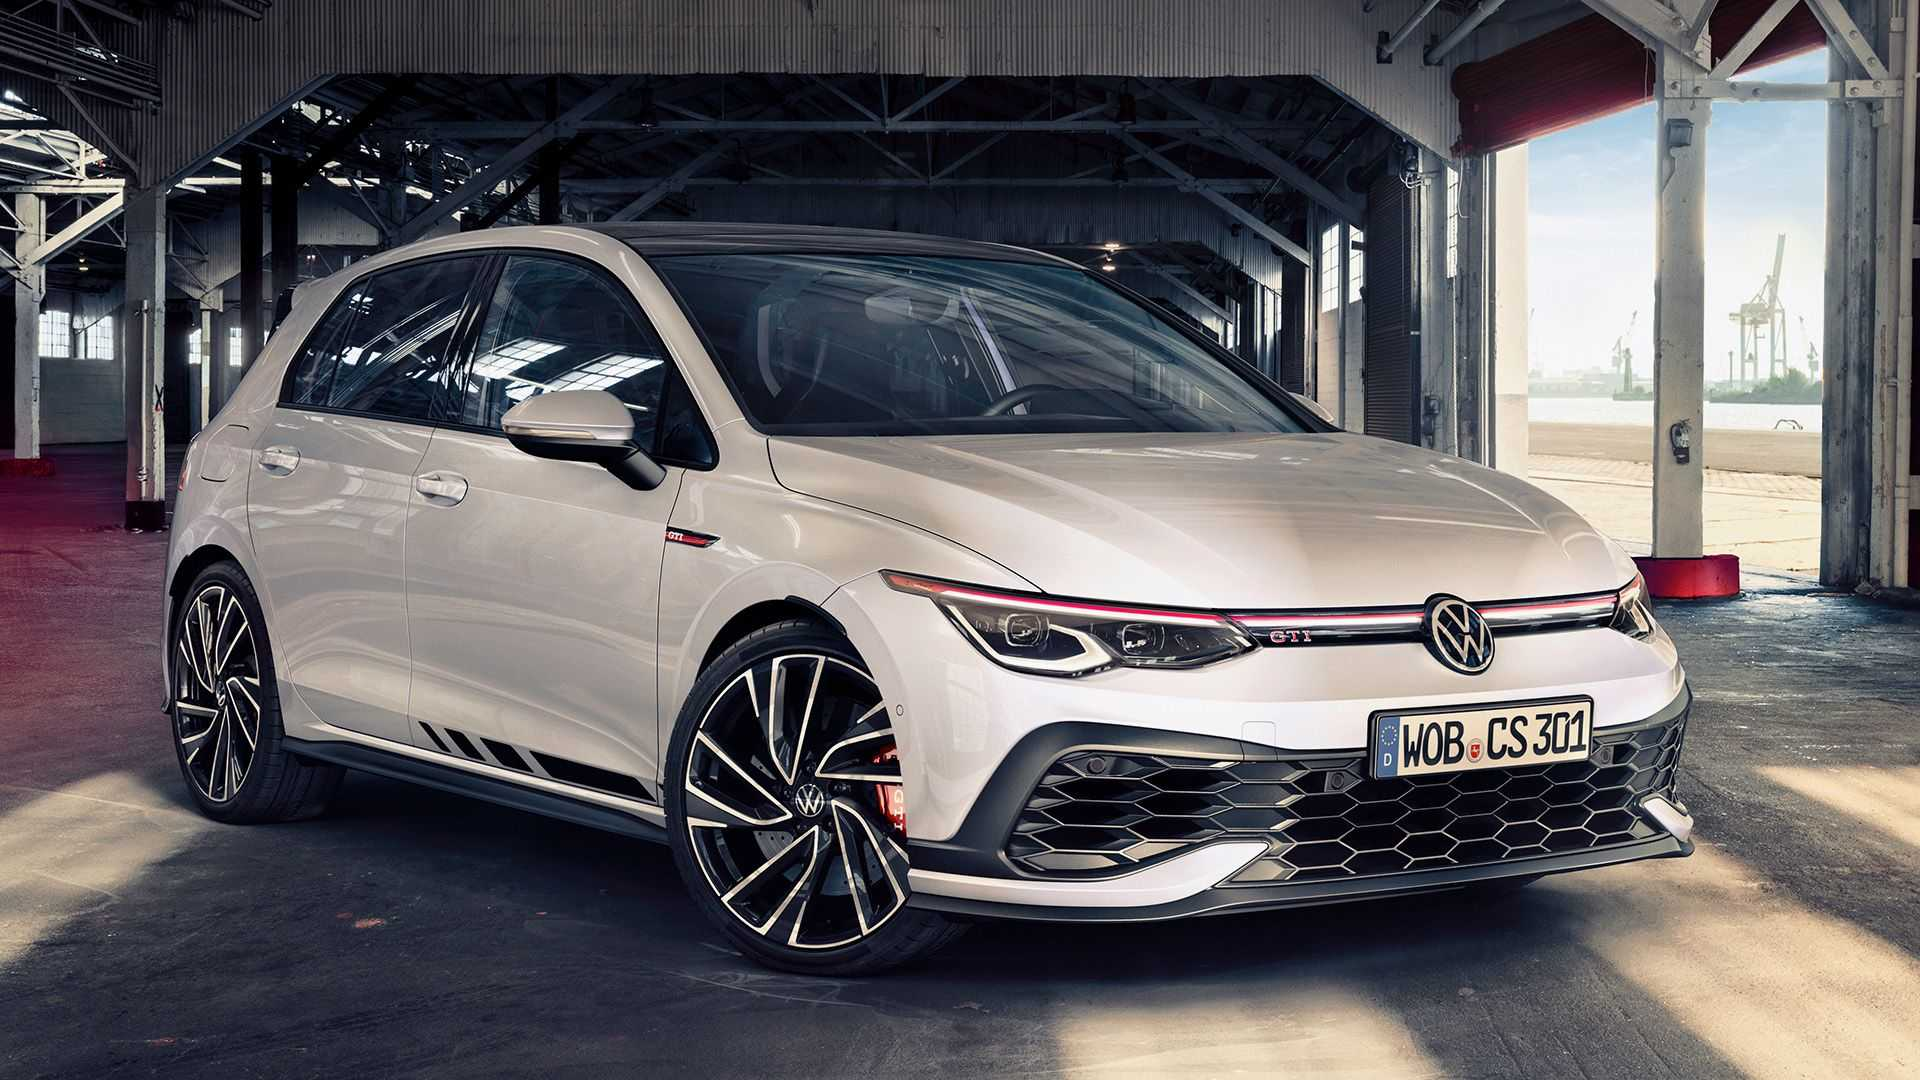 Hardcore Hot Hatch: The VW Golf GTI Clubsport Puts The FUN In Functional….Just Not On This Side Of The Ocean